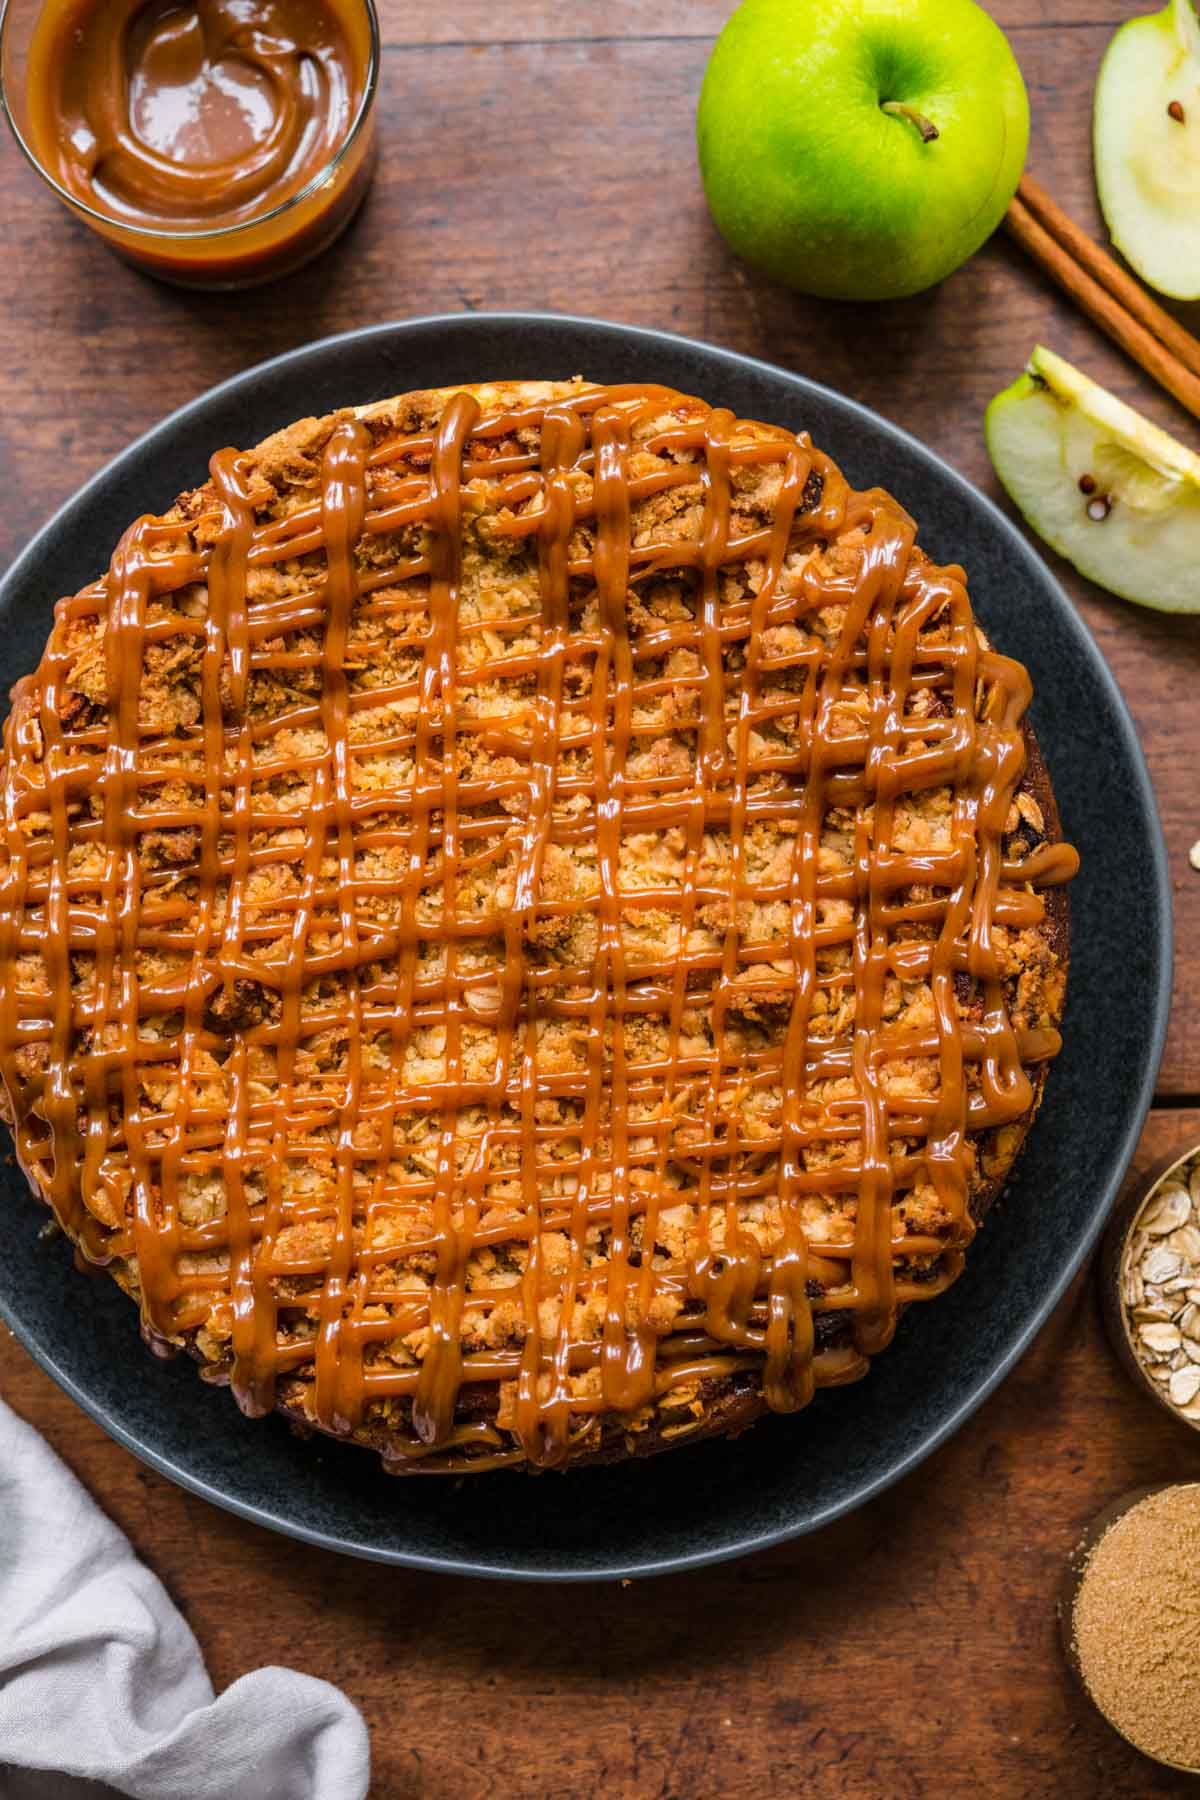 Caramel Apple Crumb Cheesecake on serving plate with caramel drizzle on top